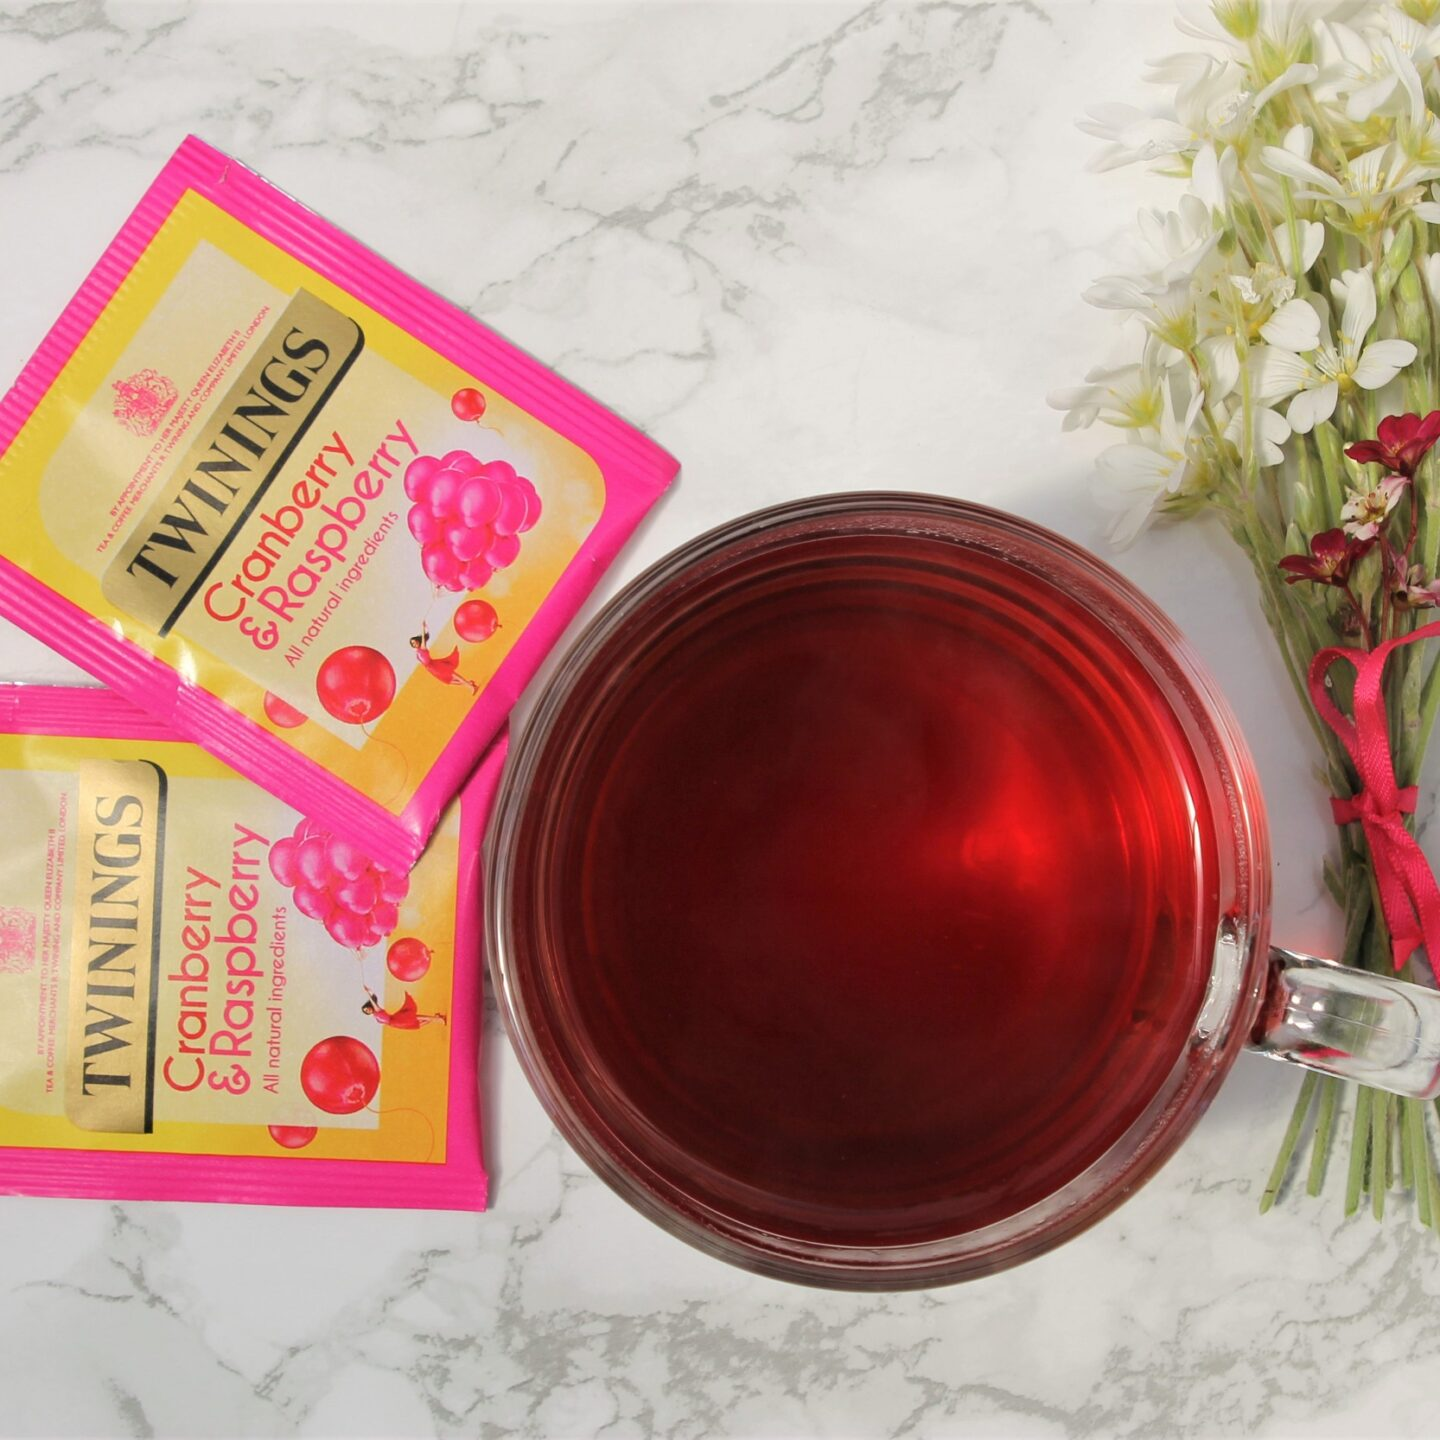 Twinings Cranberry & Raspberry Tea Review